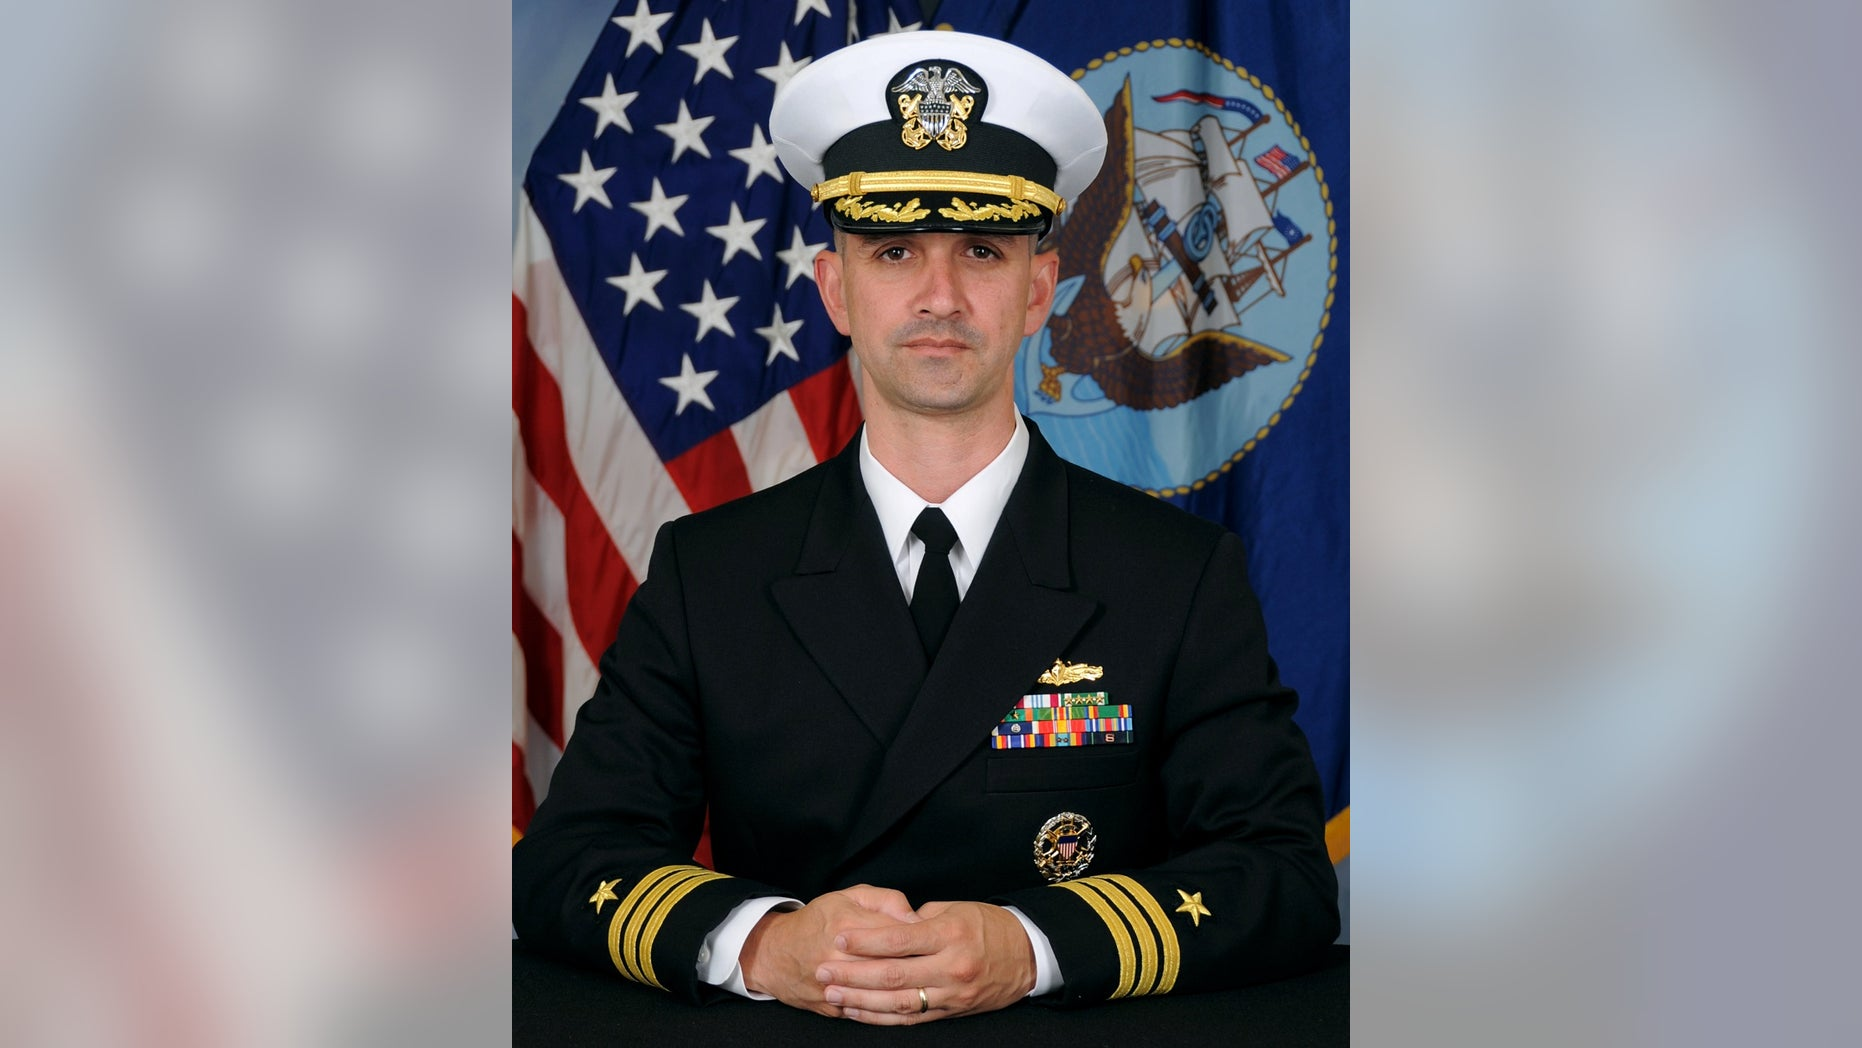 Navy veteran Alfredo Sanchez, former commander of the USS John S. McCain, pleaded guilty Friday to dereliction of duty in connection with a deadly collision in August 2017.